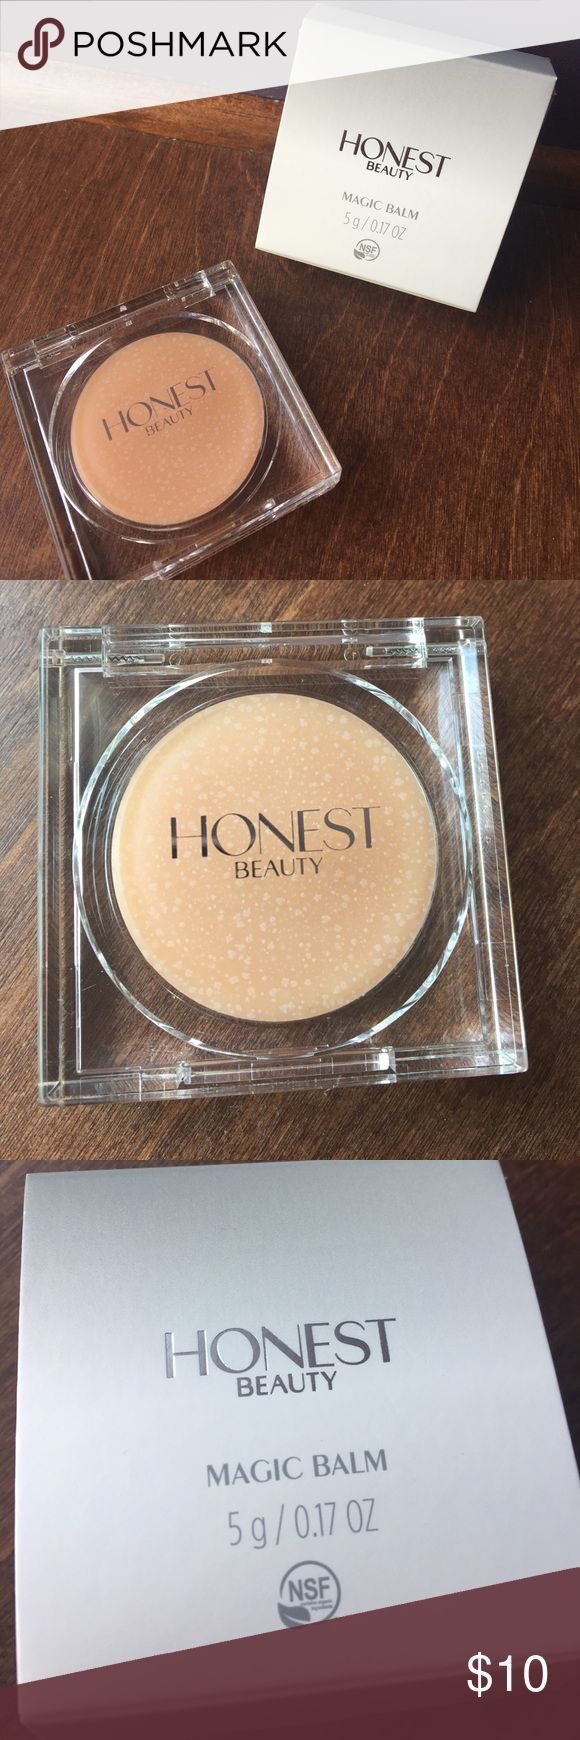 Honest Beauty Magic Balm 5g 0.17 oz New New and unopened! The Honest Company Makeup